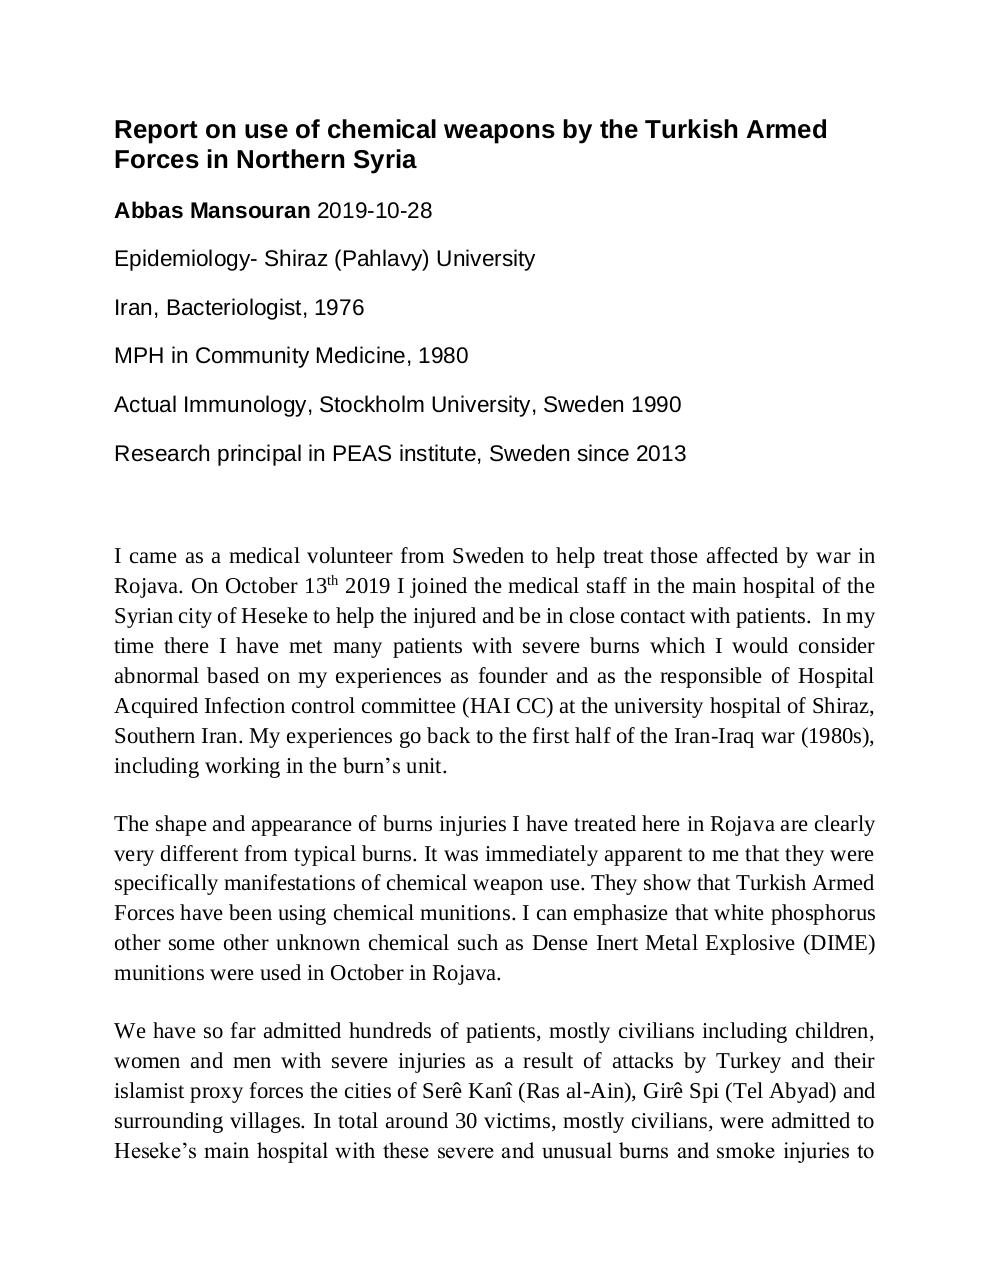 report on chemical weapon use_Dr Abbas.pdf - page 1/15